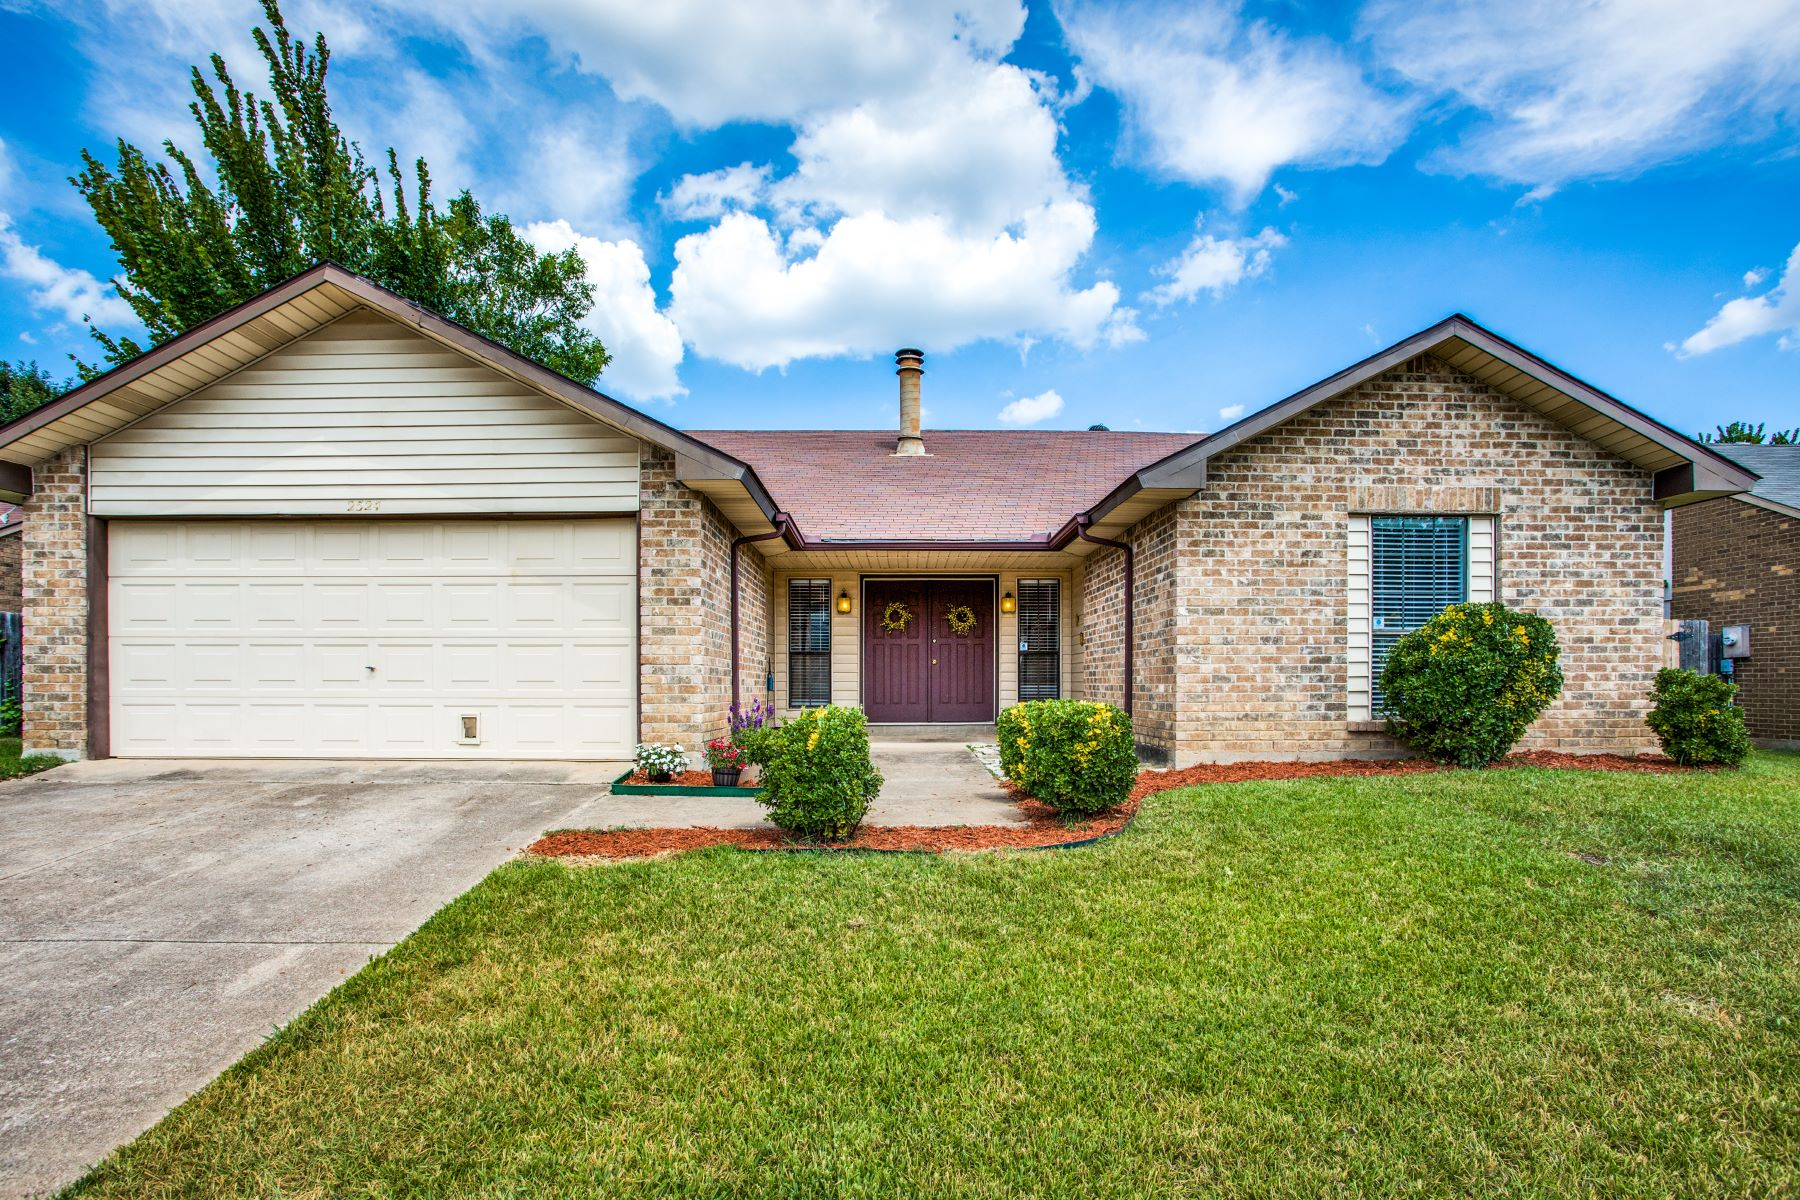 Single Family Homes for Active at Charming and Well Maintained Home 2524 Chinaberry Drive Bedford, Texas 76021 United States